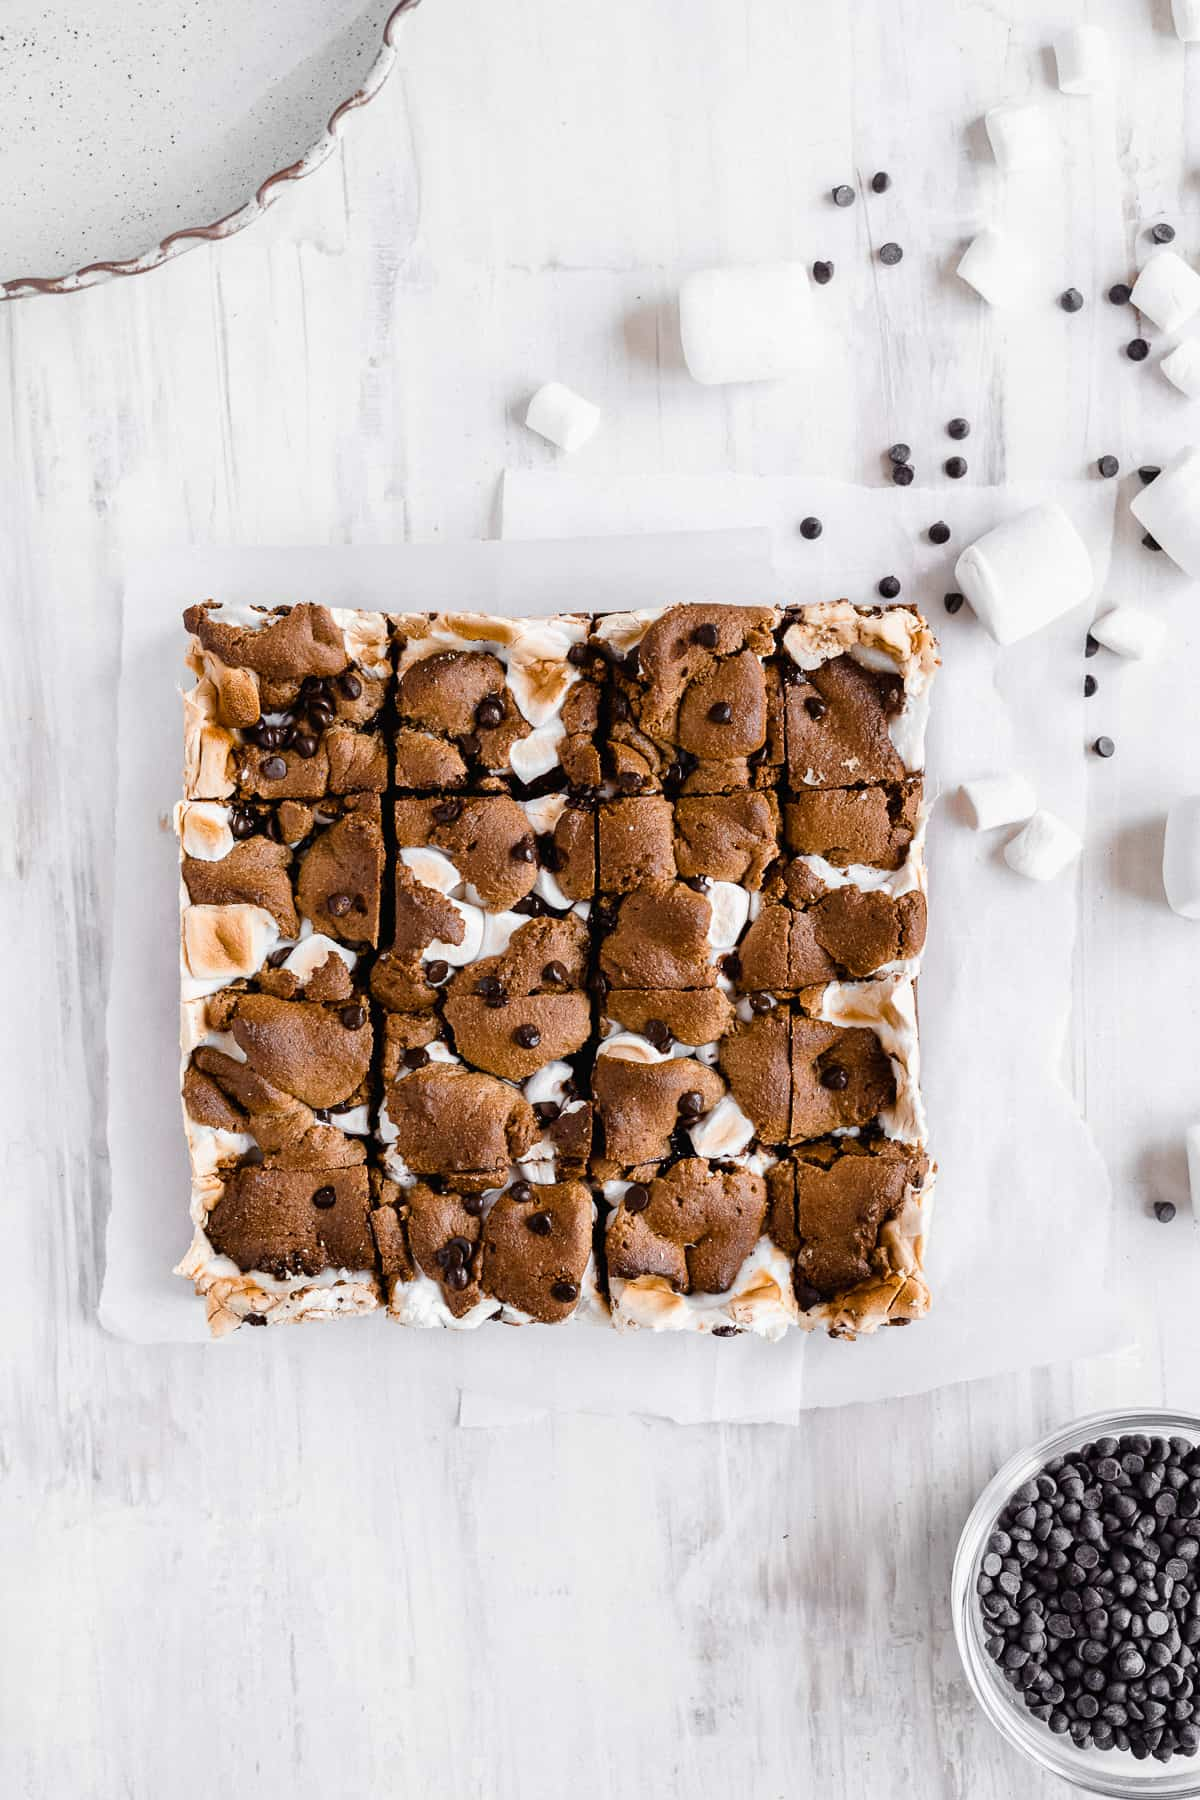 Baked s'more bars on a white sheet sliced into squares.